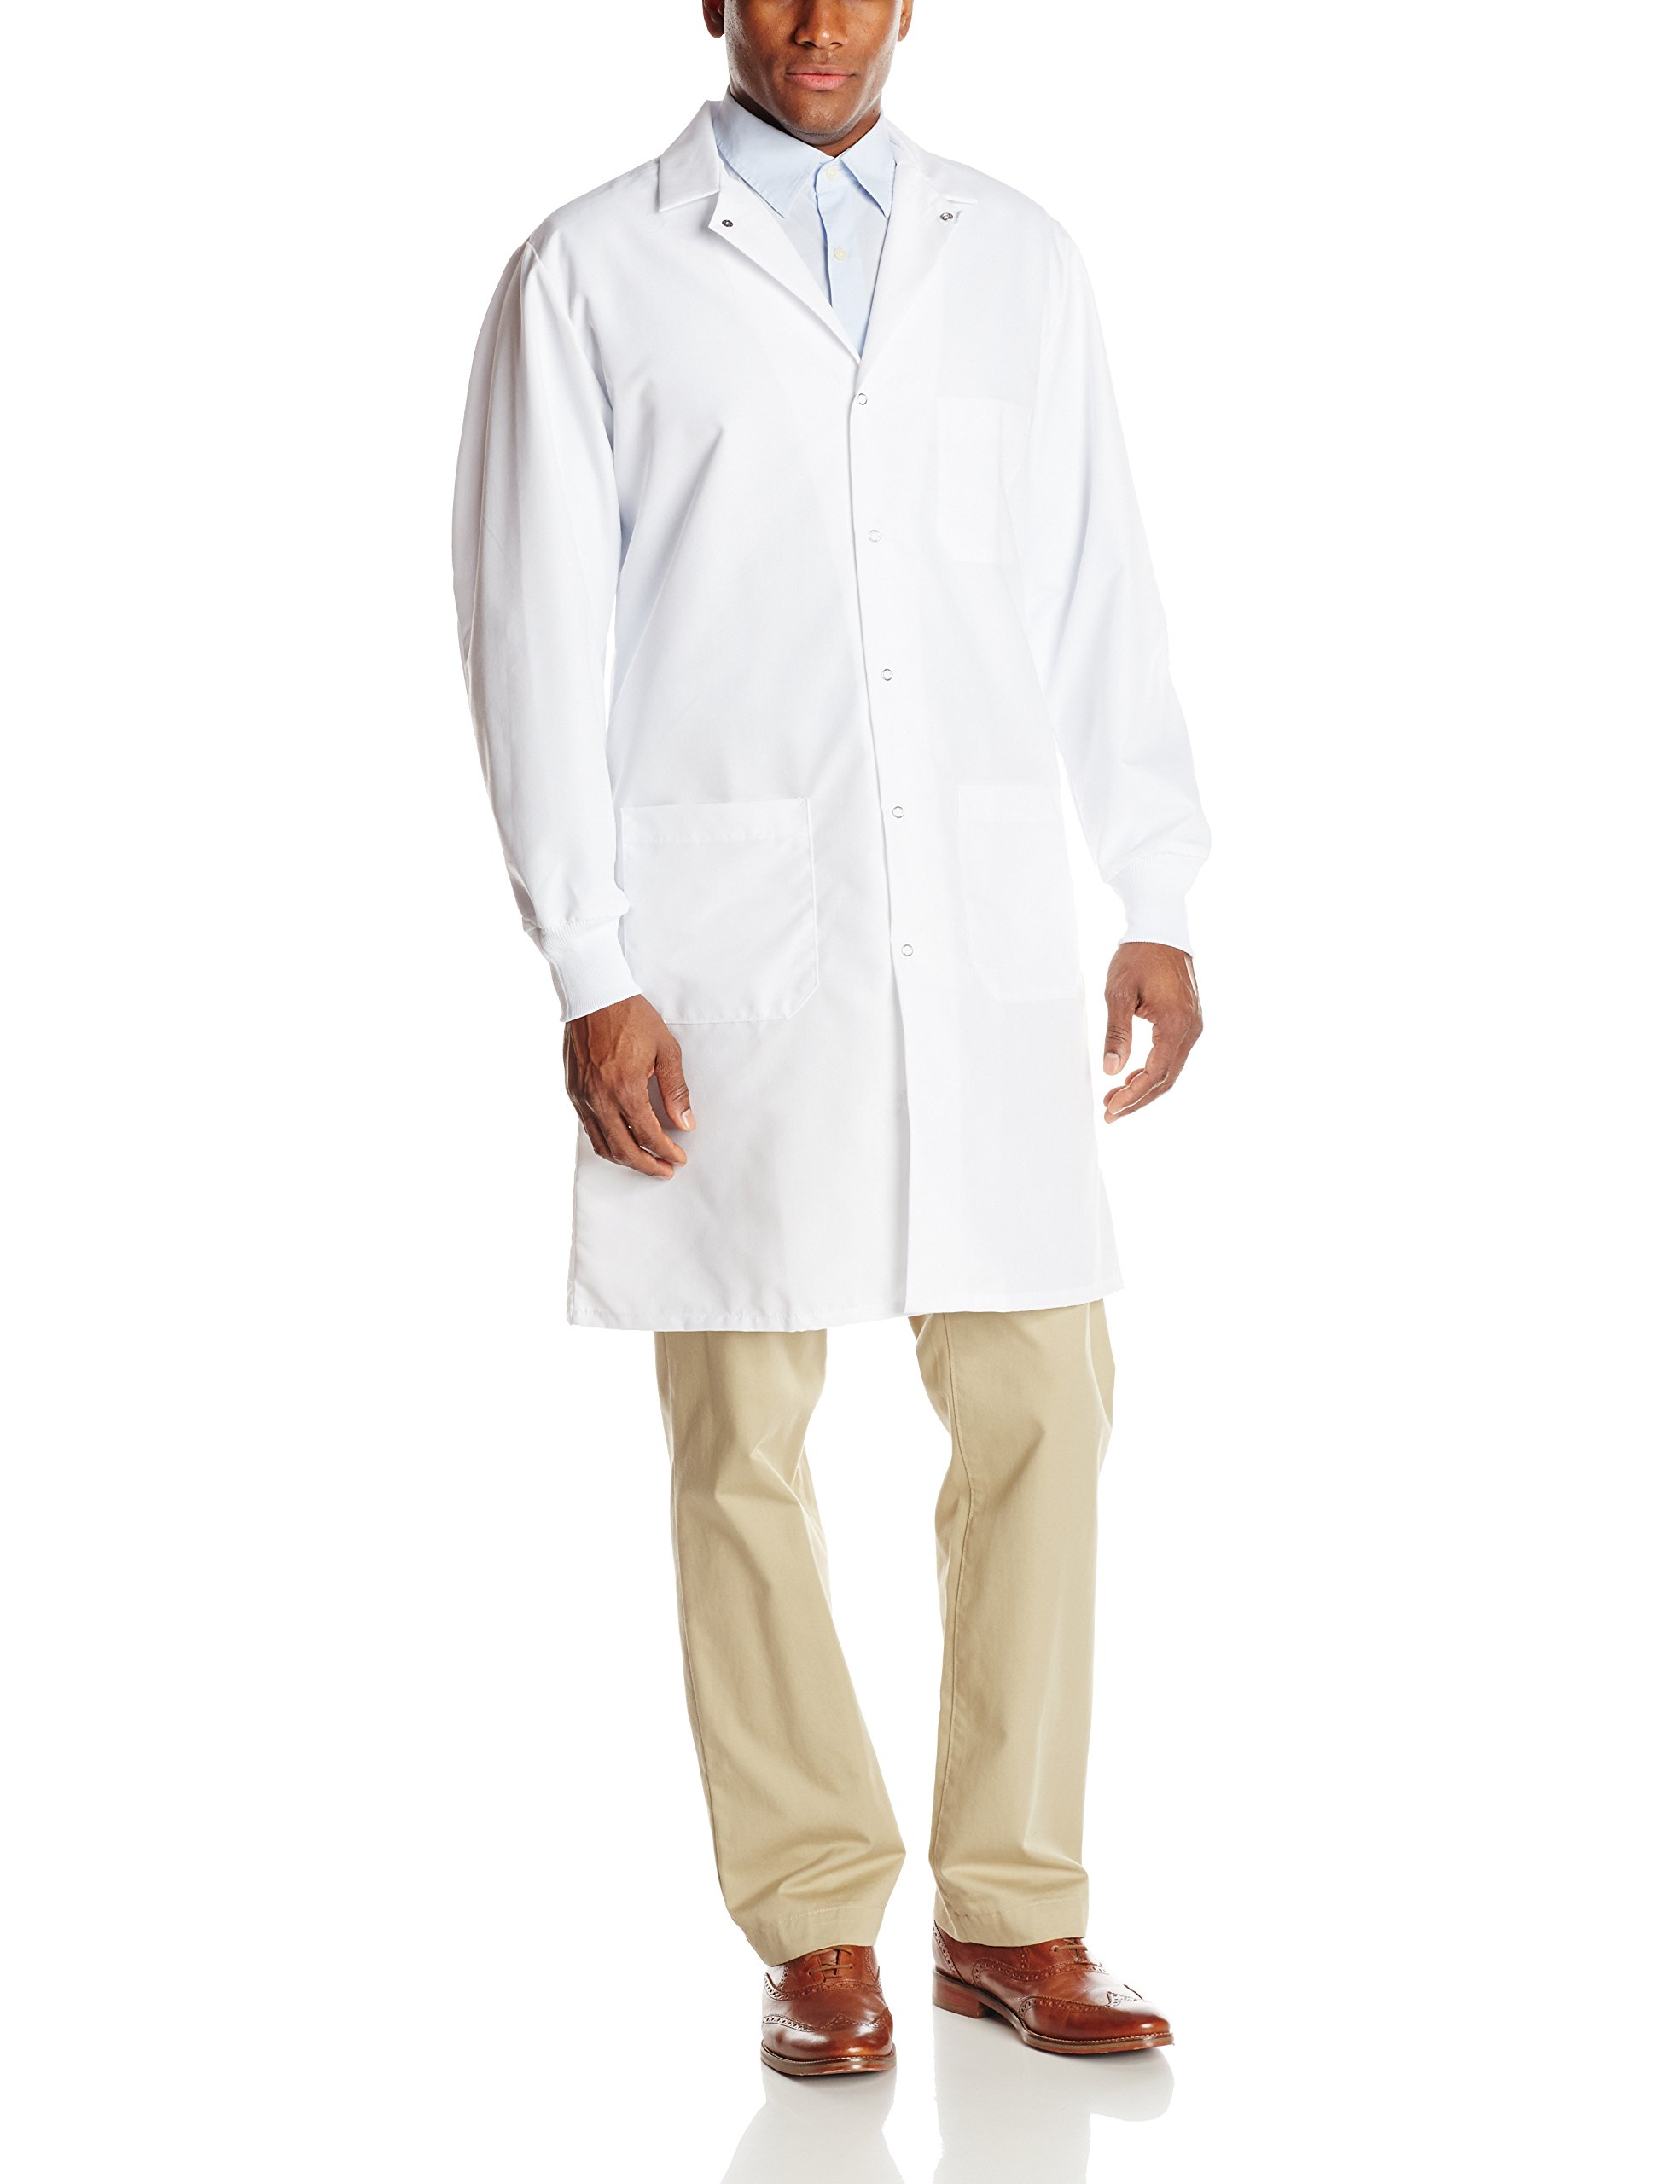 Red Kap Unisex Specialized Cuffed Lab Coat, White, X-Small